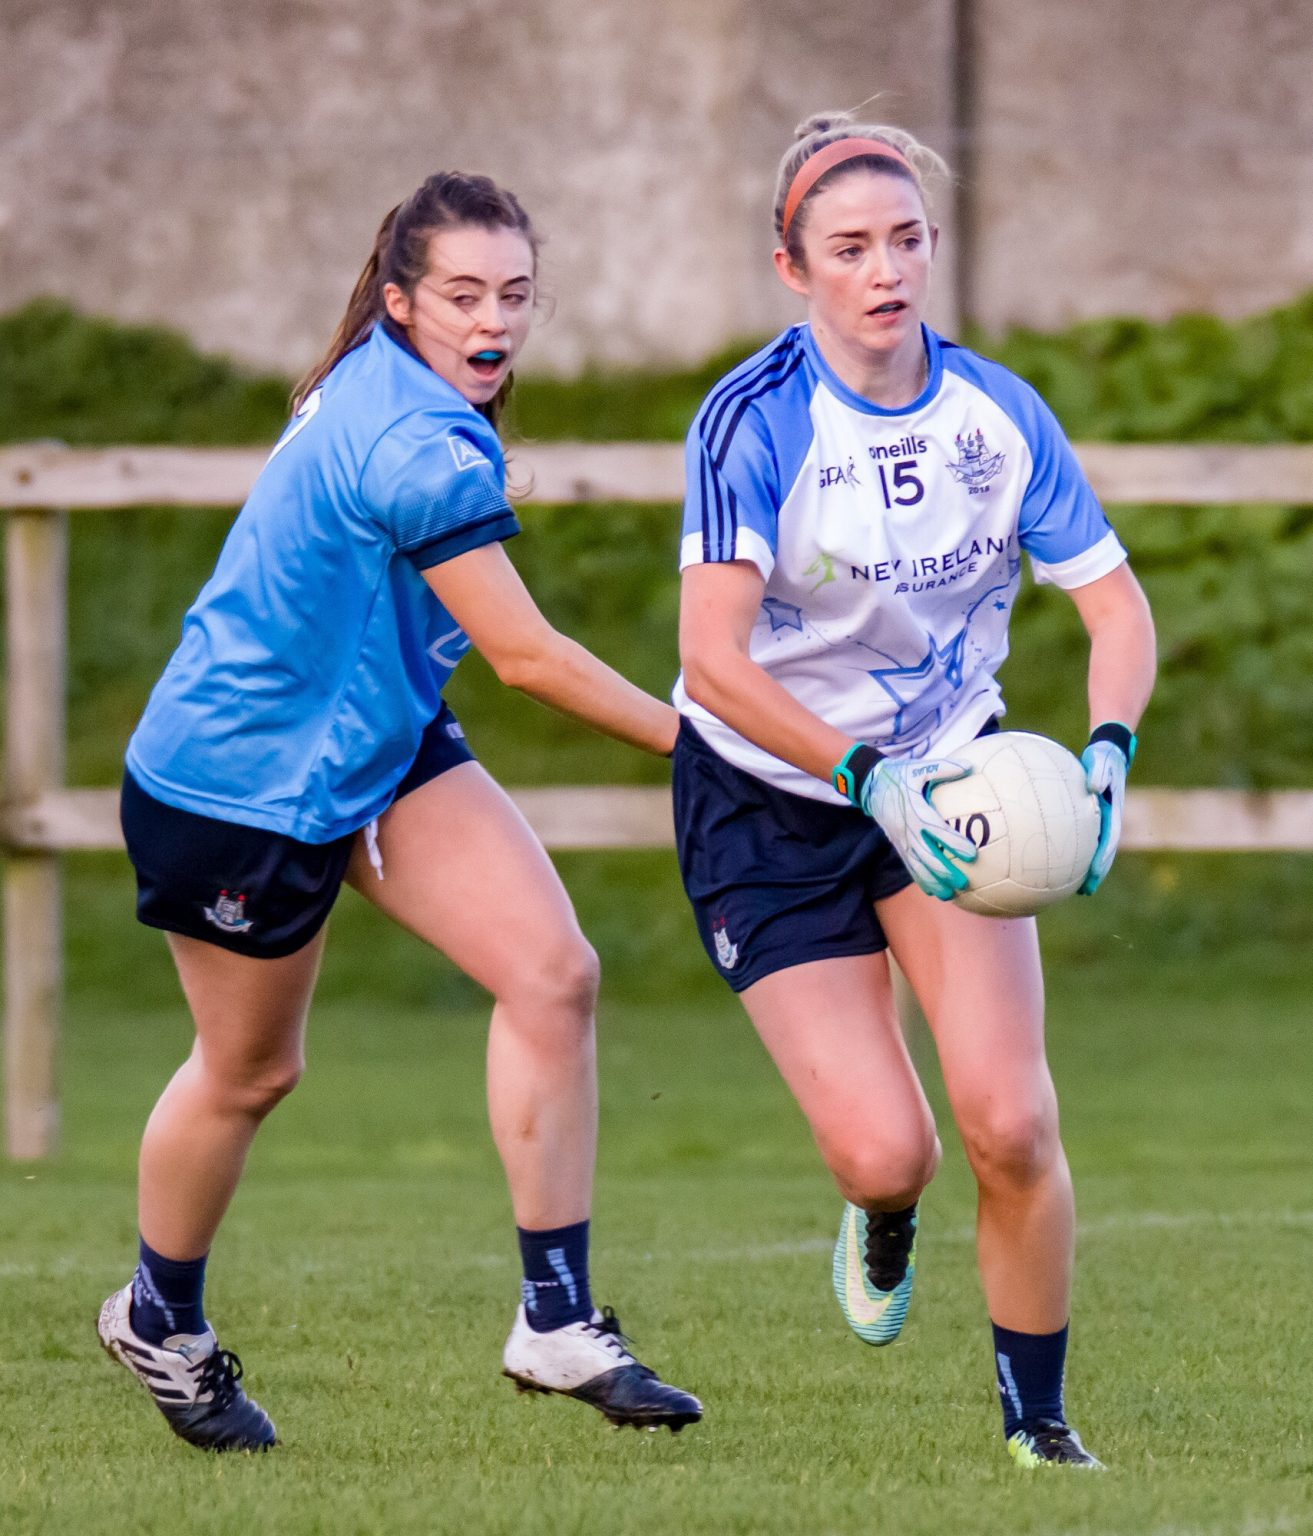 Dublin player Siobhán Killeen breaks away with the ball during the Dub Stars Challenge game.